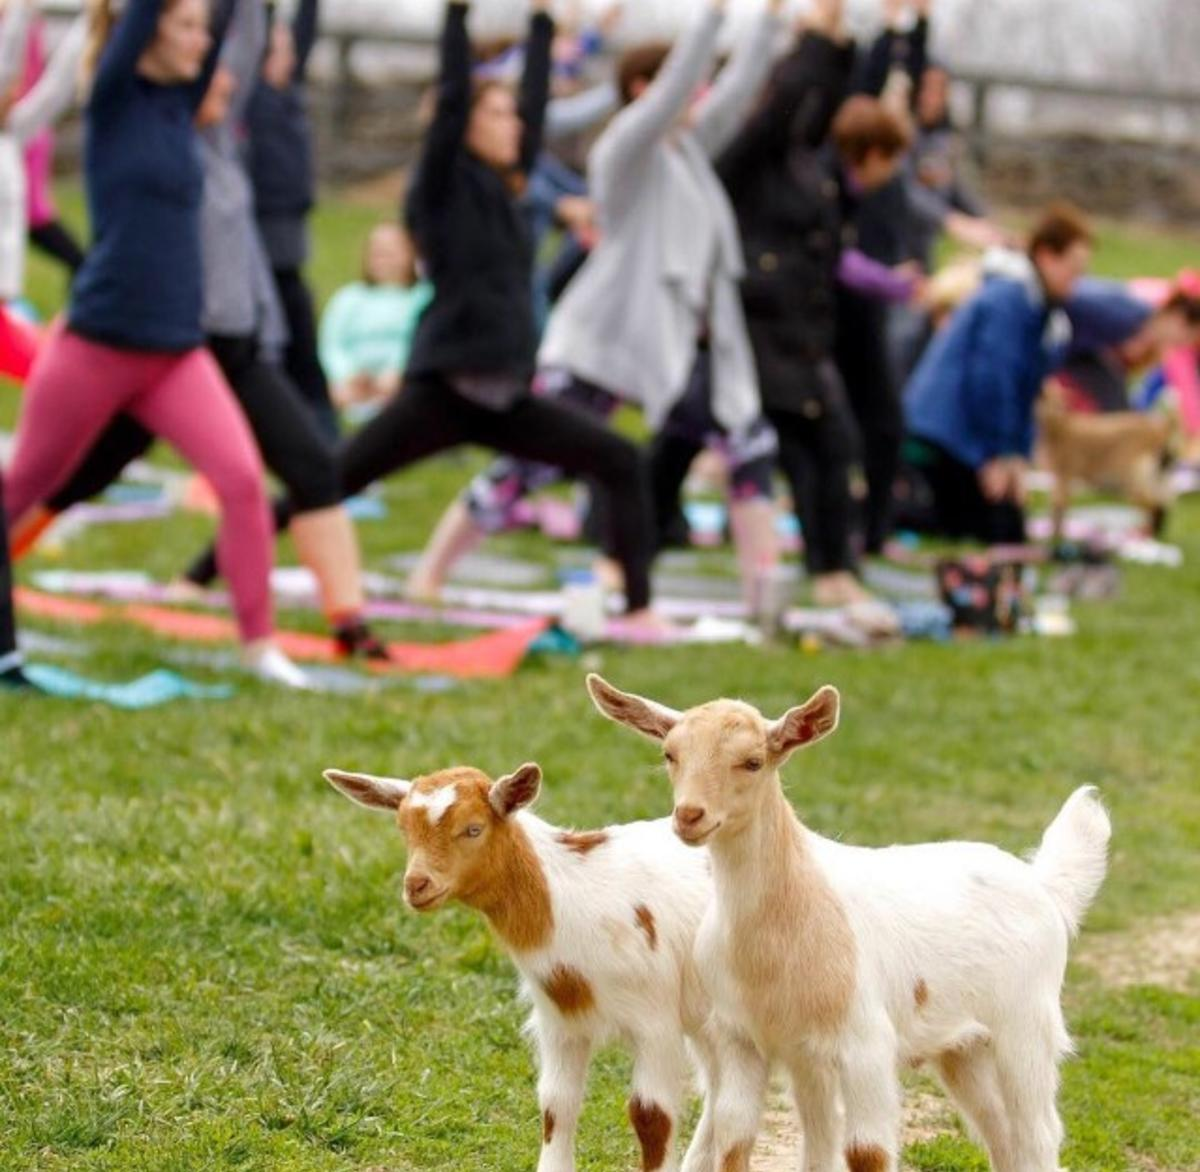 People doing yoga outside with goats